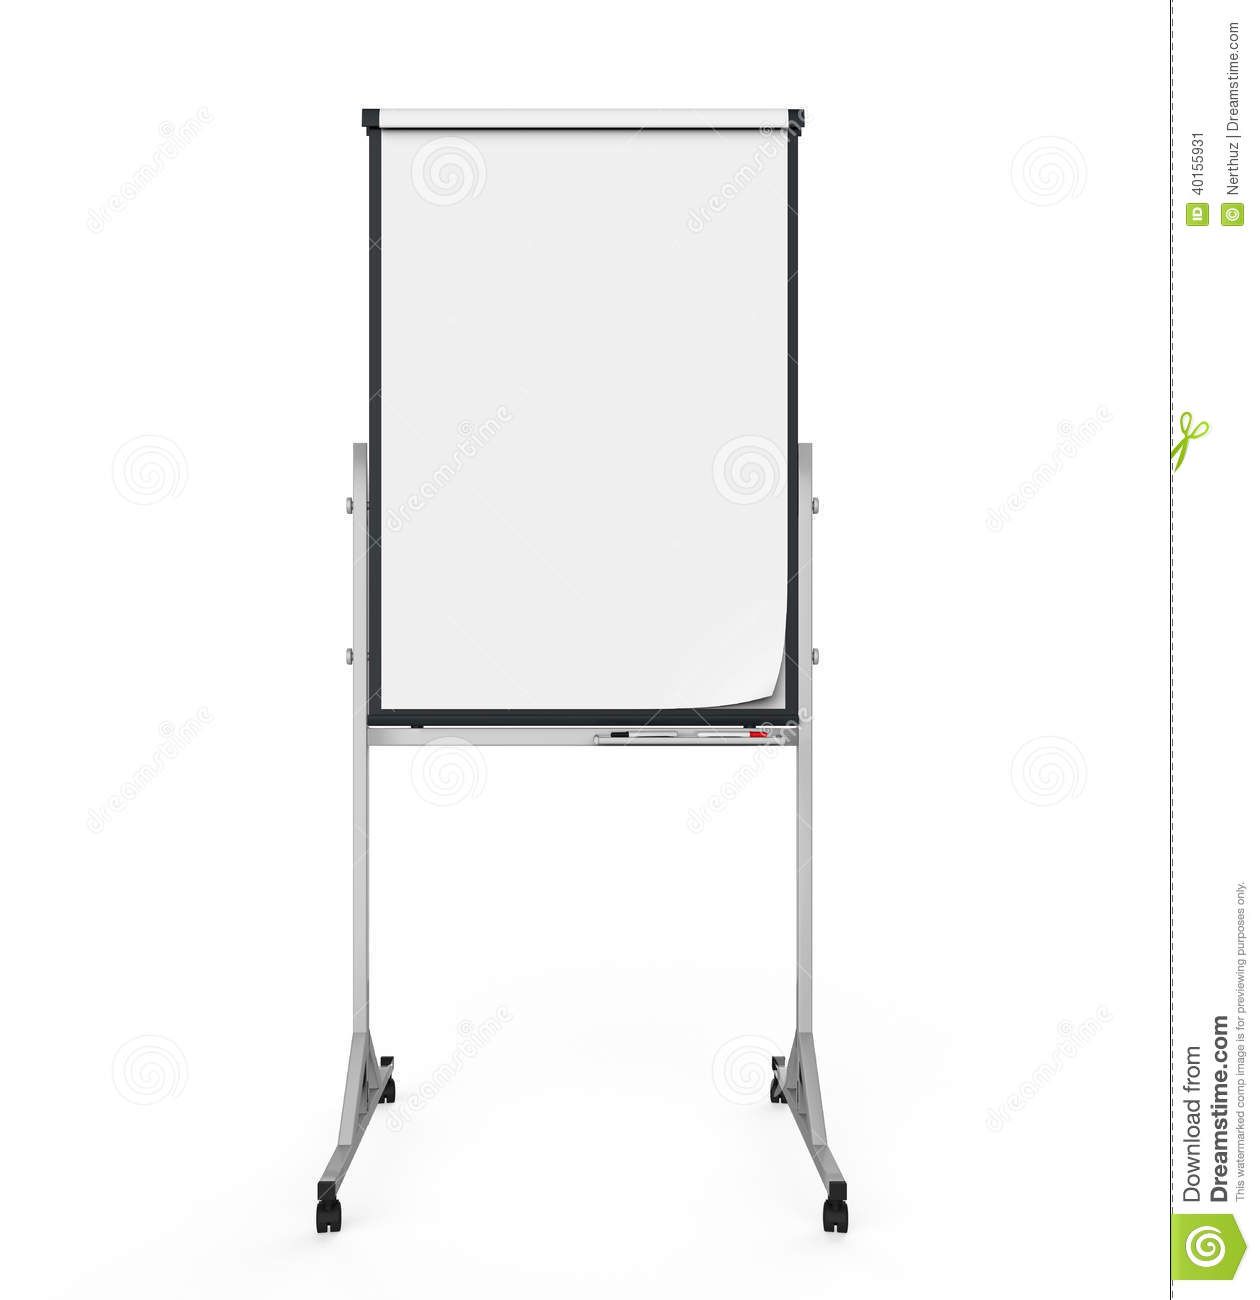 Memo Board Flip Chart Paper And Board Stock Illustration. Image Of